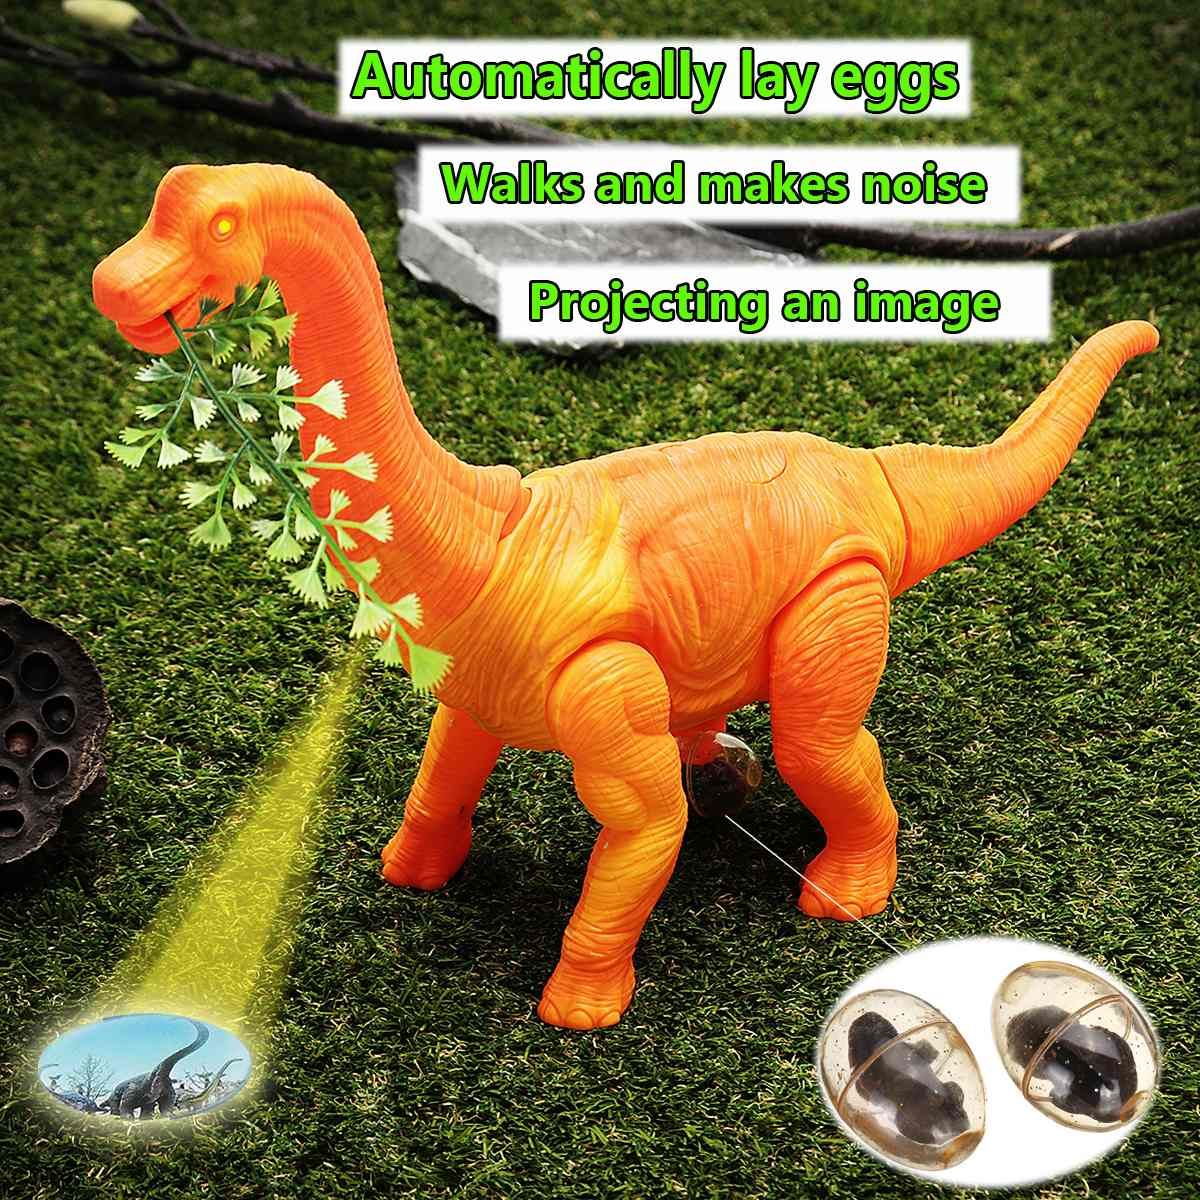 Electric Dinosaur Toy For Kids Walking Brachiosaurus Dinosaur With Light Sound Lay Eggs Function Glowing Interactive Model Toy